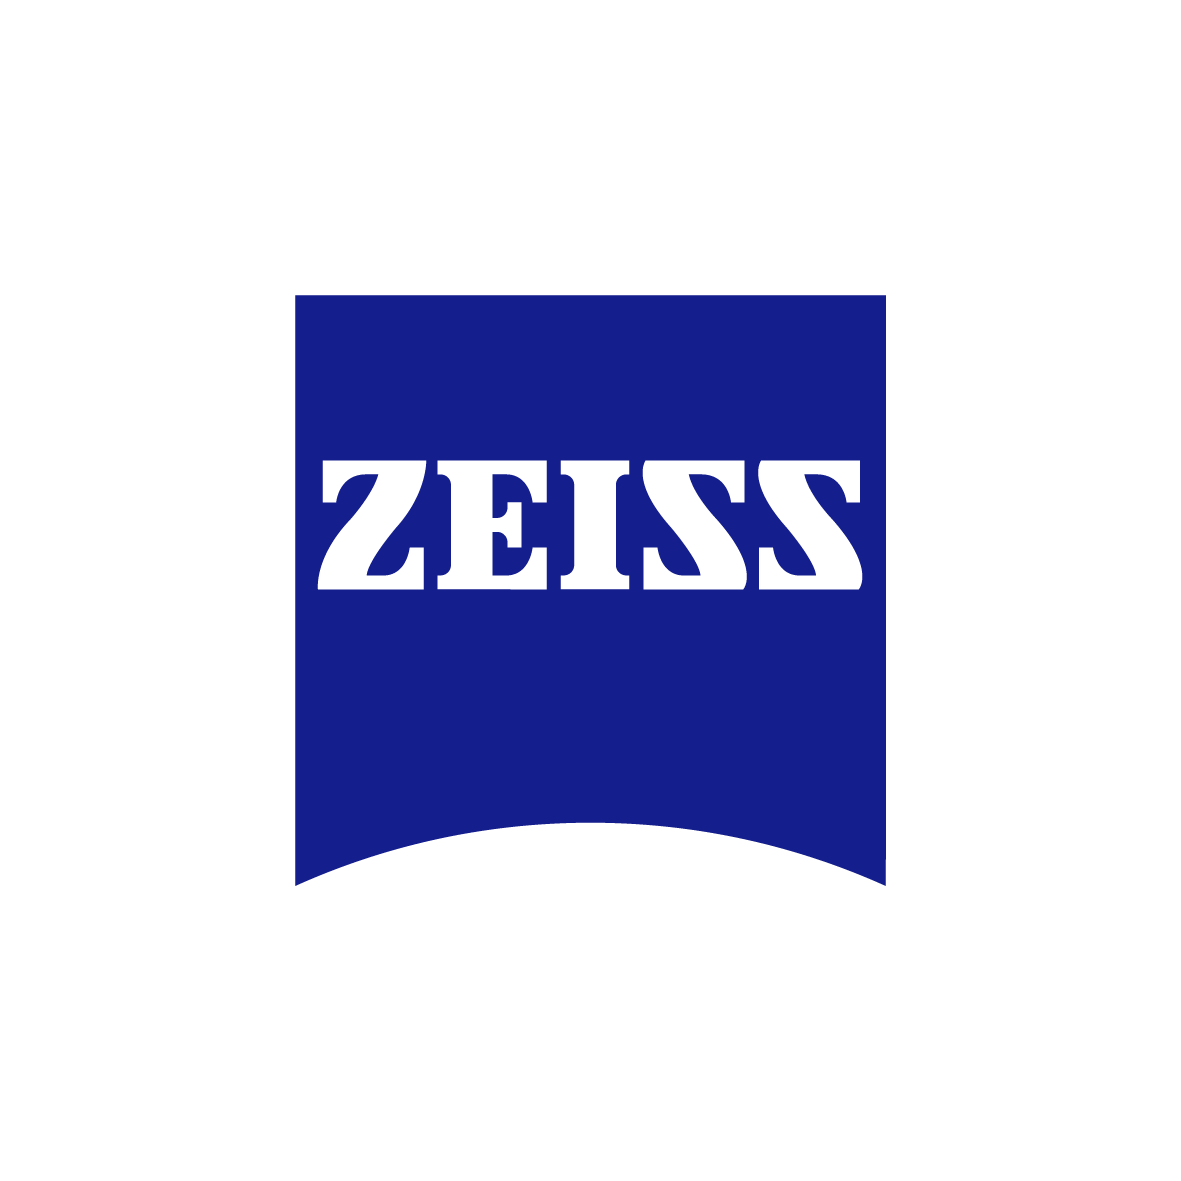 Add Carl Zeiss page